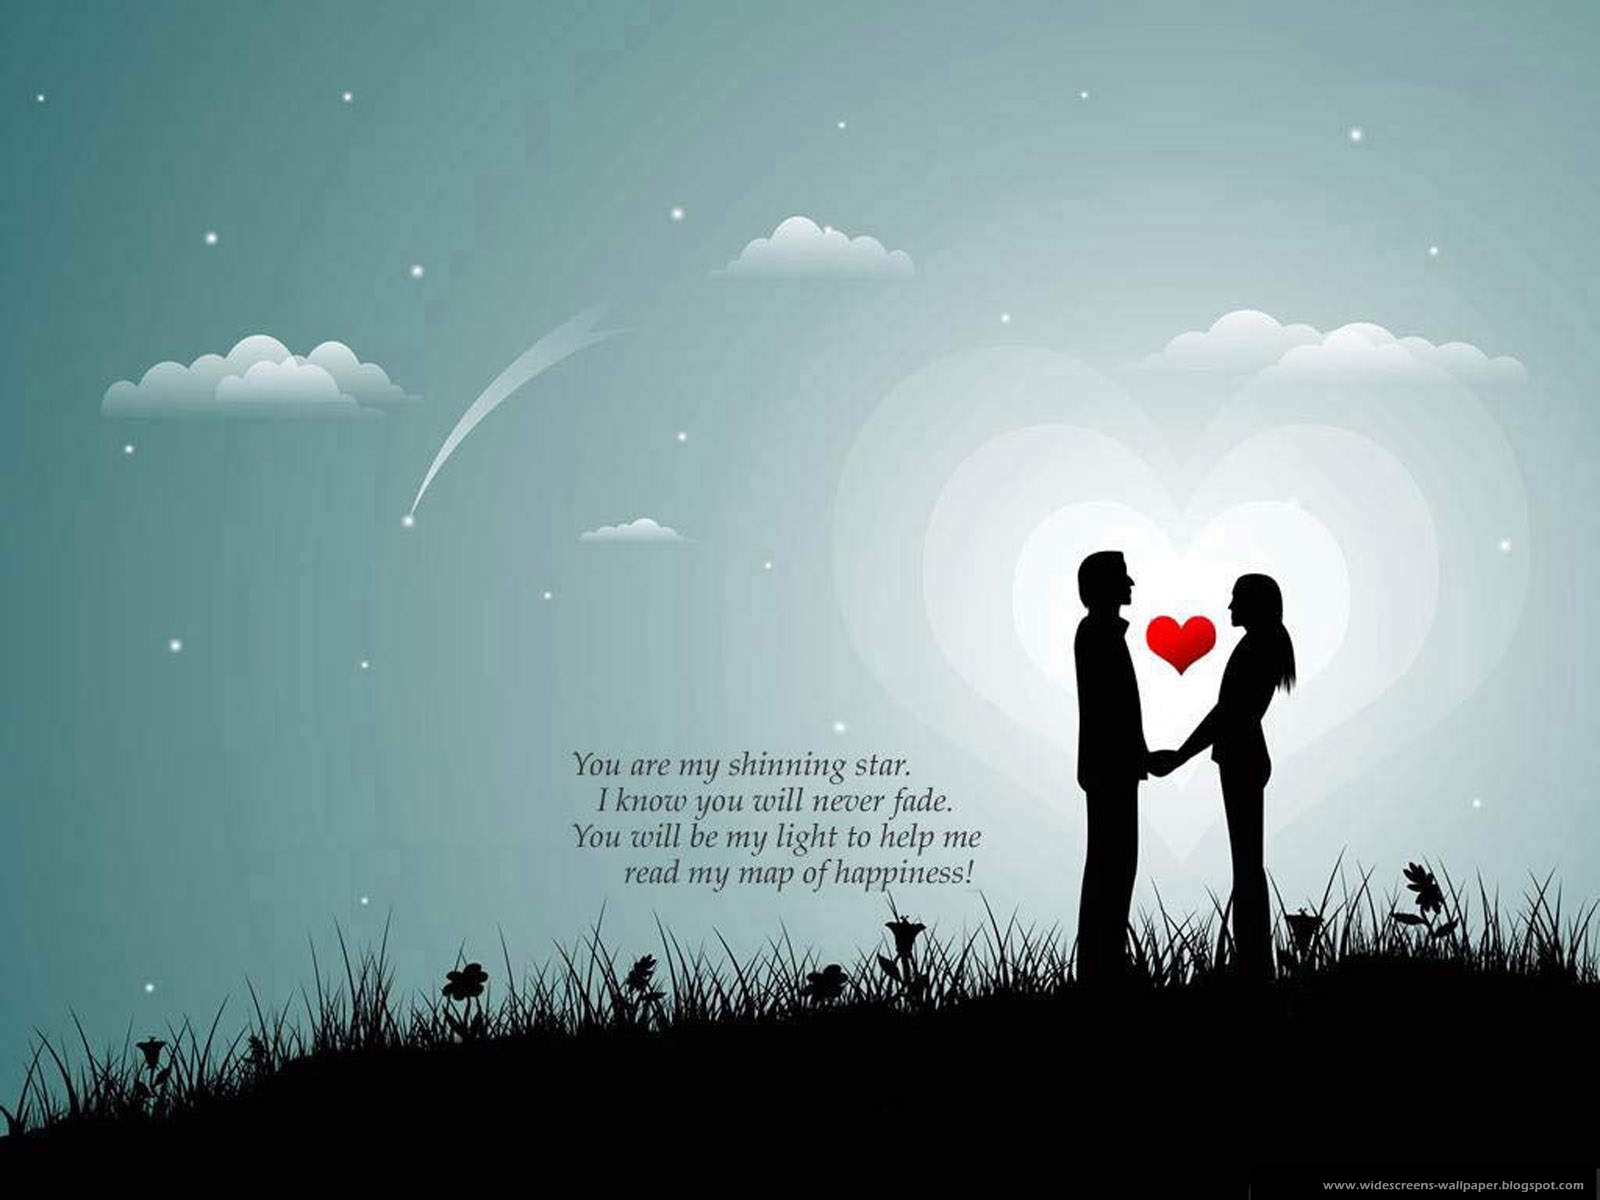 Beautiful Wallpaper Of Love With Quotes : Wallpaper collection For Your computer and Mobile Phones: New Romantic Love Words And Quotations ...